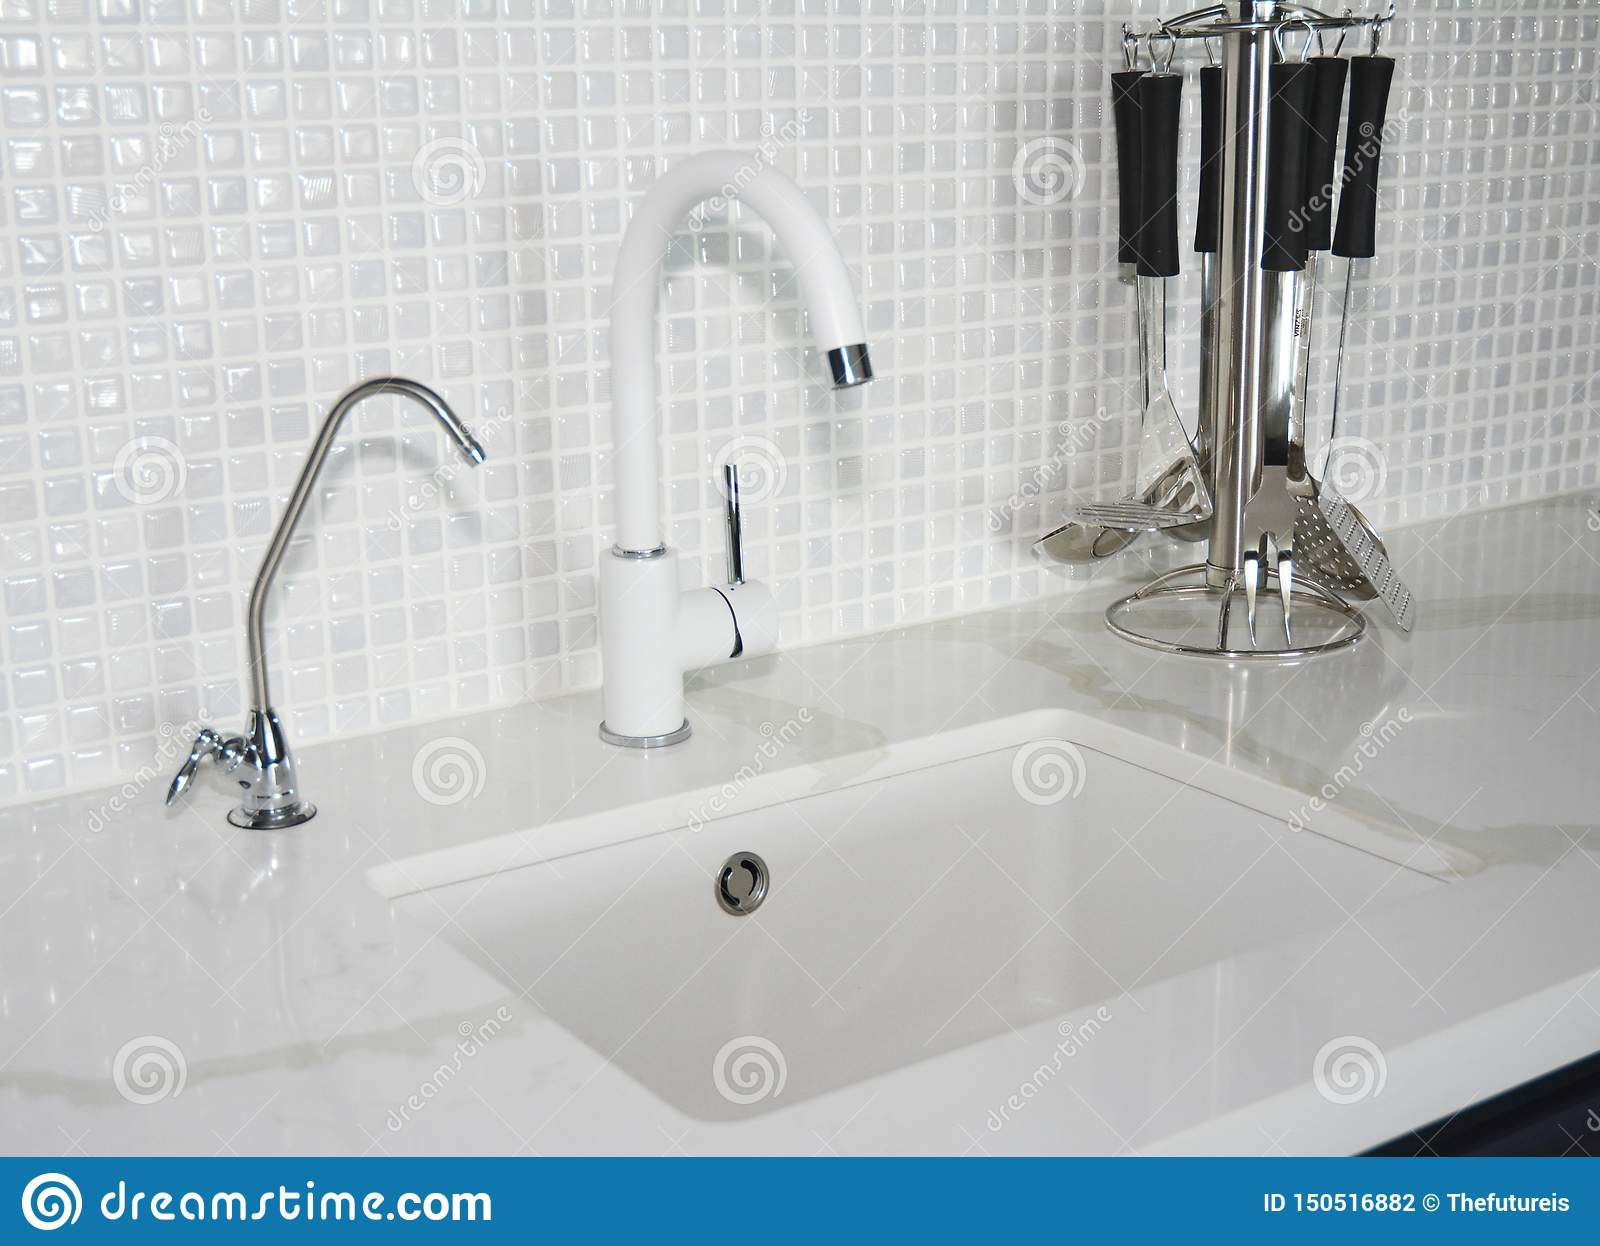 Modern Ceramic Kitchen Sink Modern Kitchen Chrome Faucet And Mosaic Tiles Wall Stock Photo Image Of Handle Mosaic 150516882